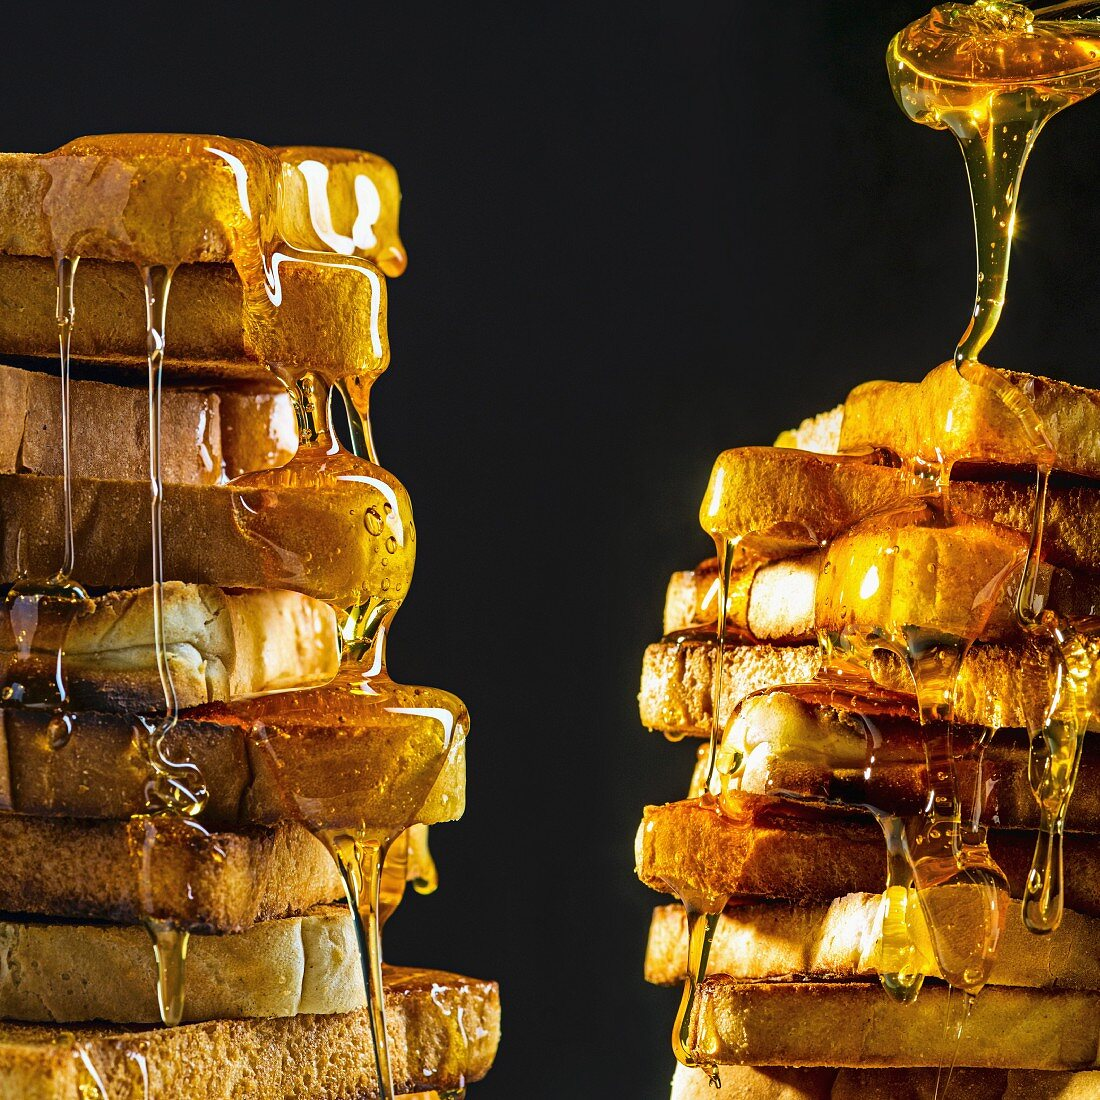 Stacks of toast with lots of honey